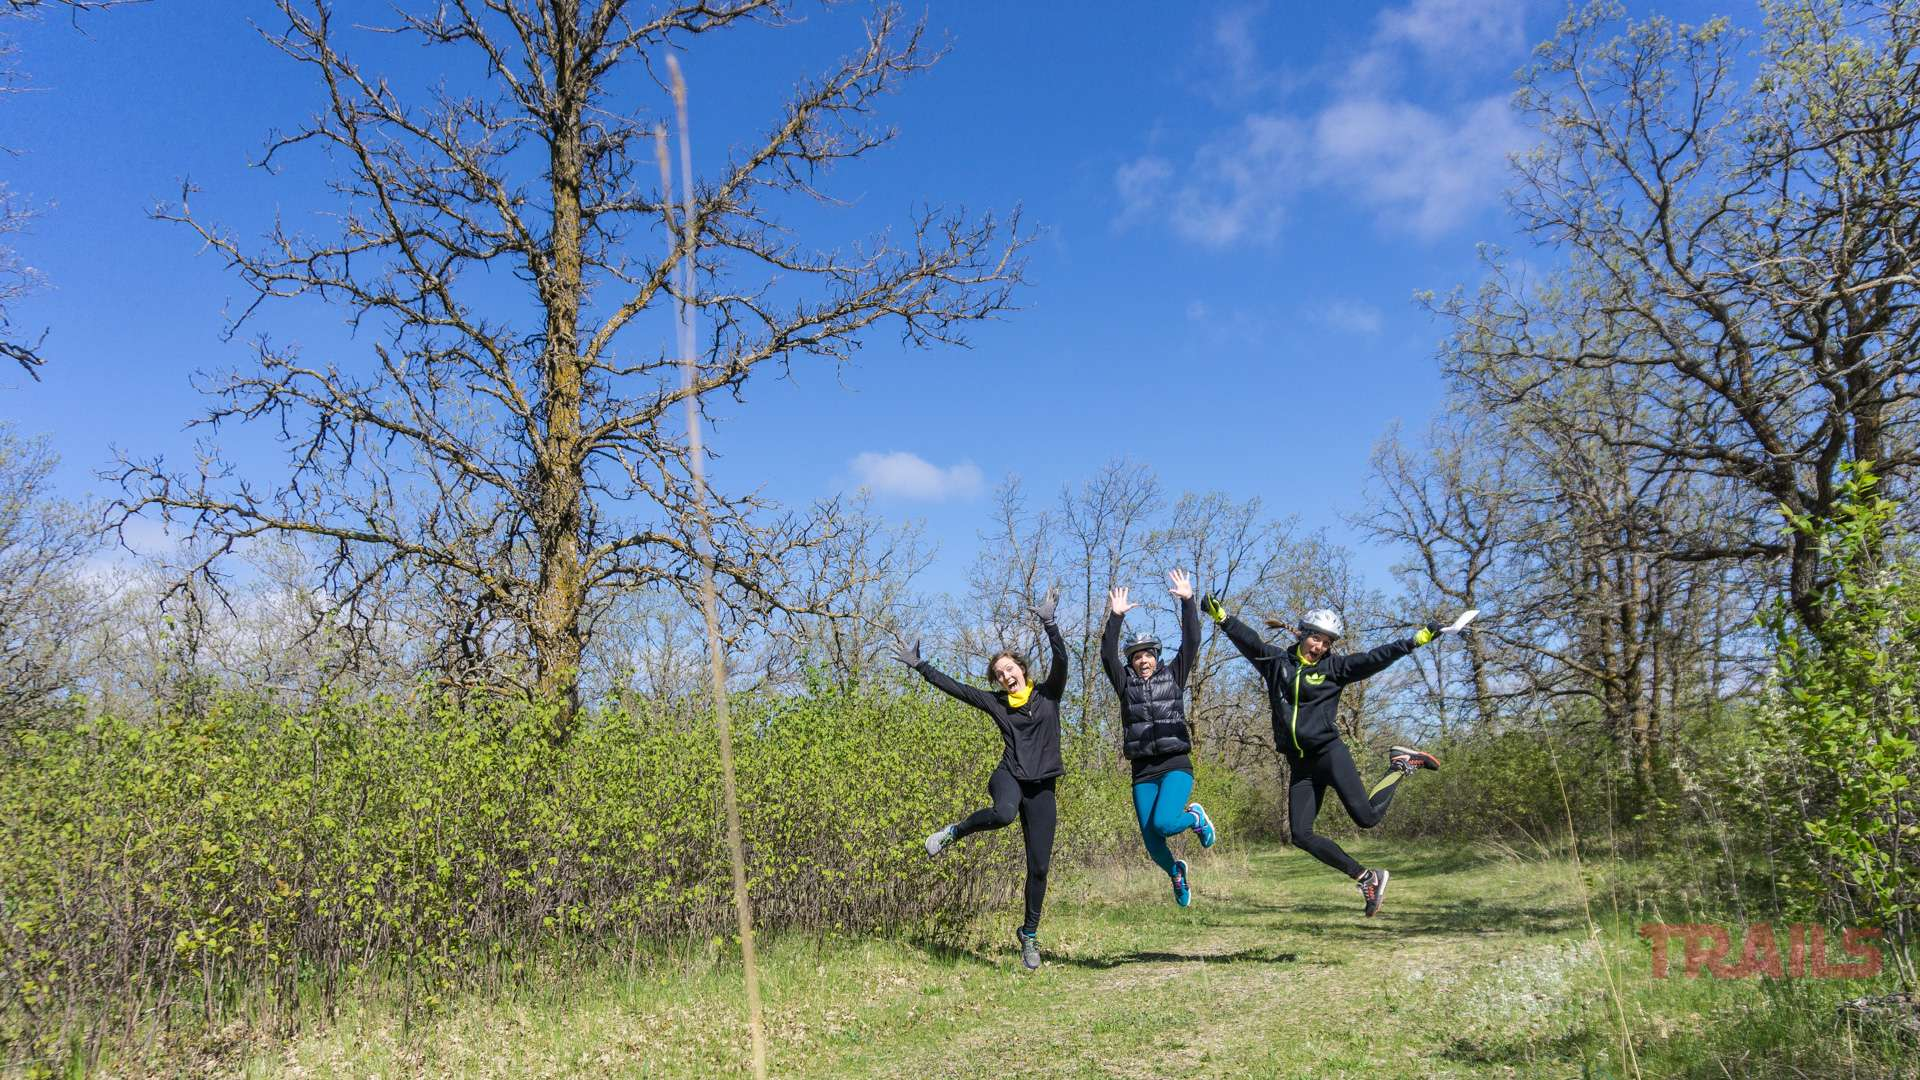 Three women jump in the air while running outdoors